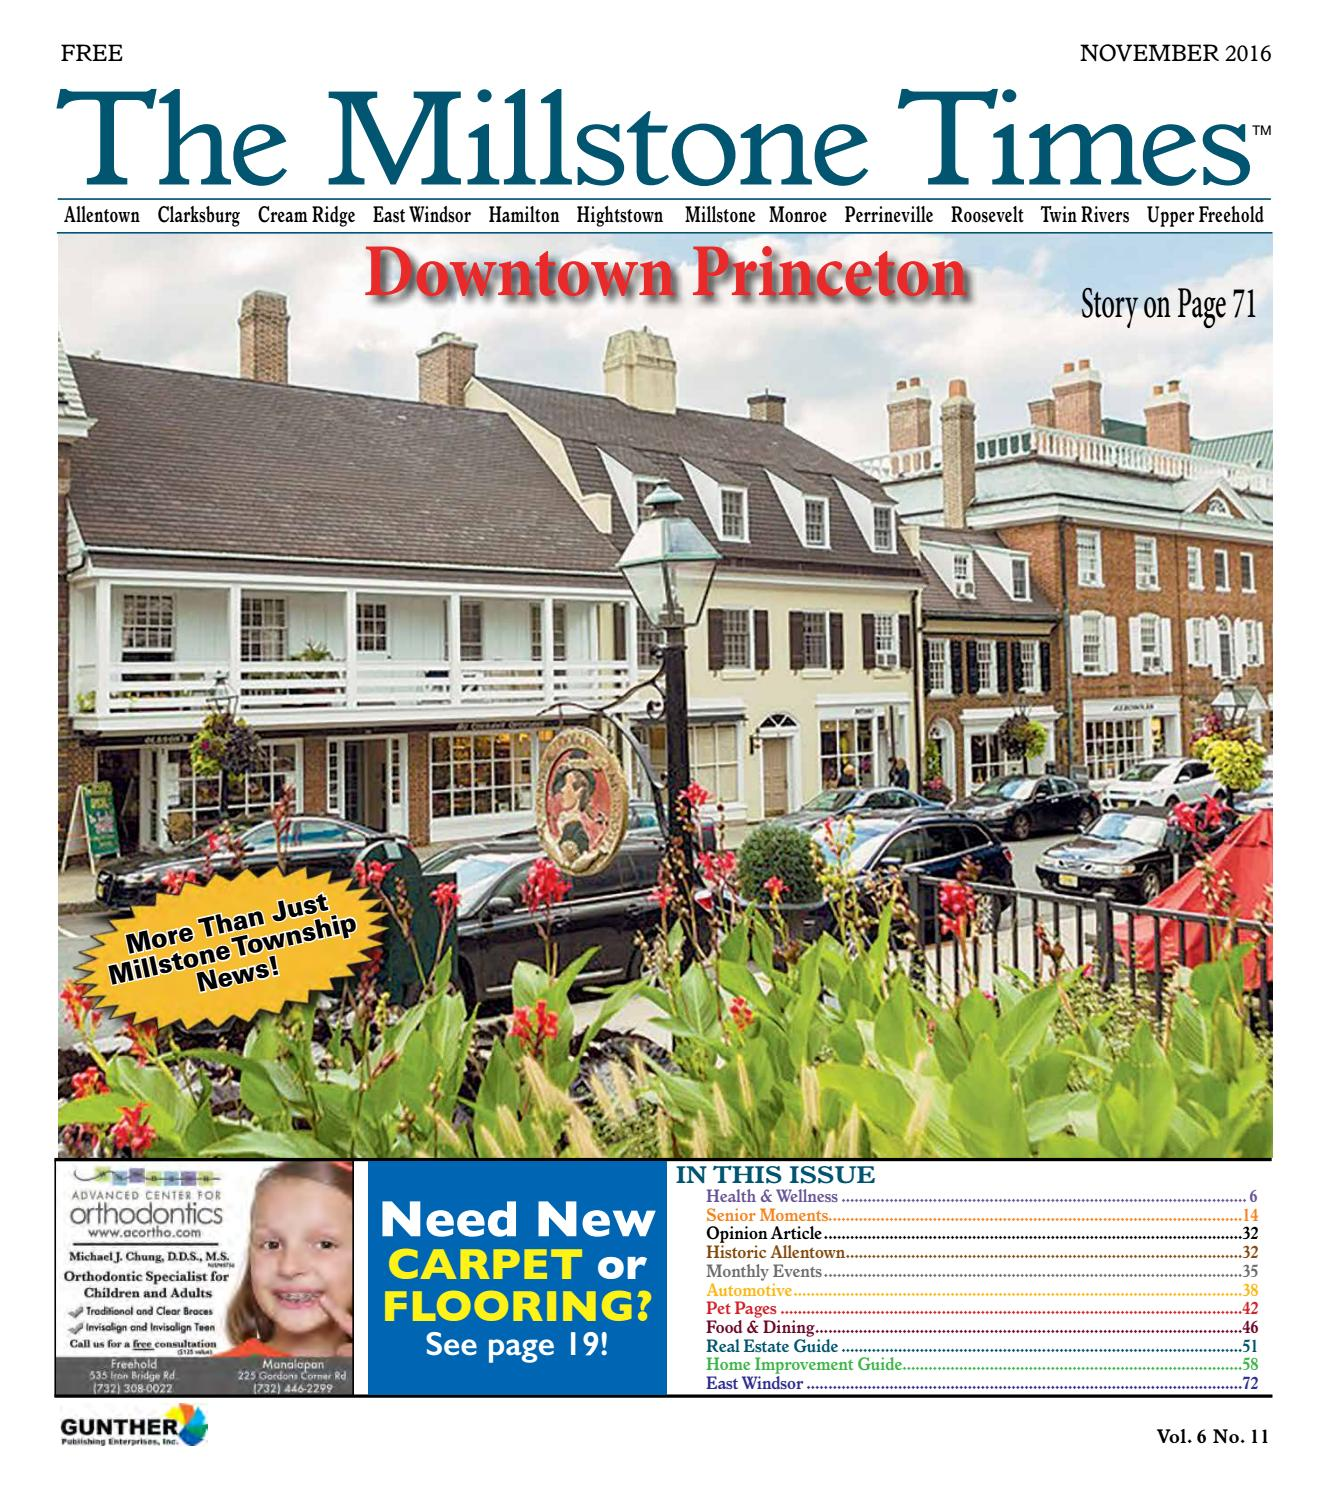 The Millstone Times November 2016 by Gunther Publications